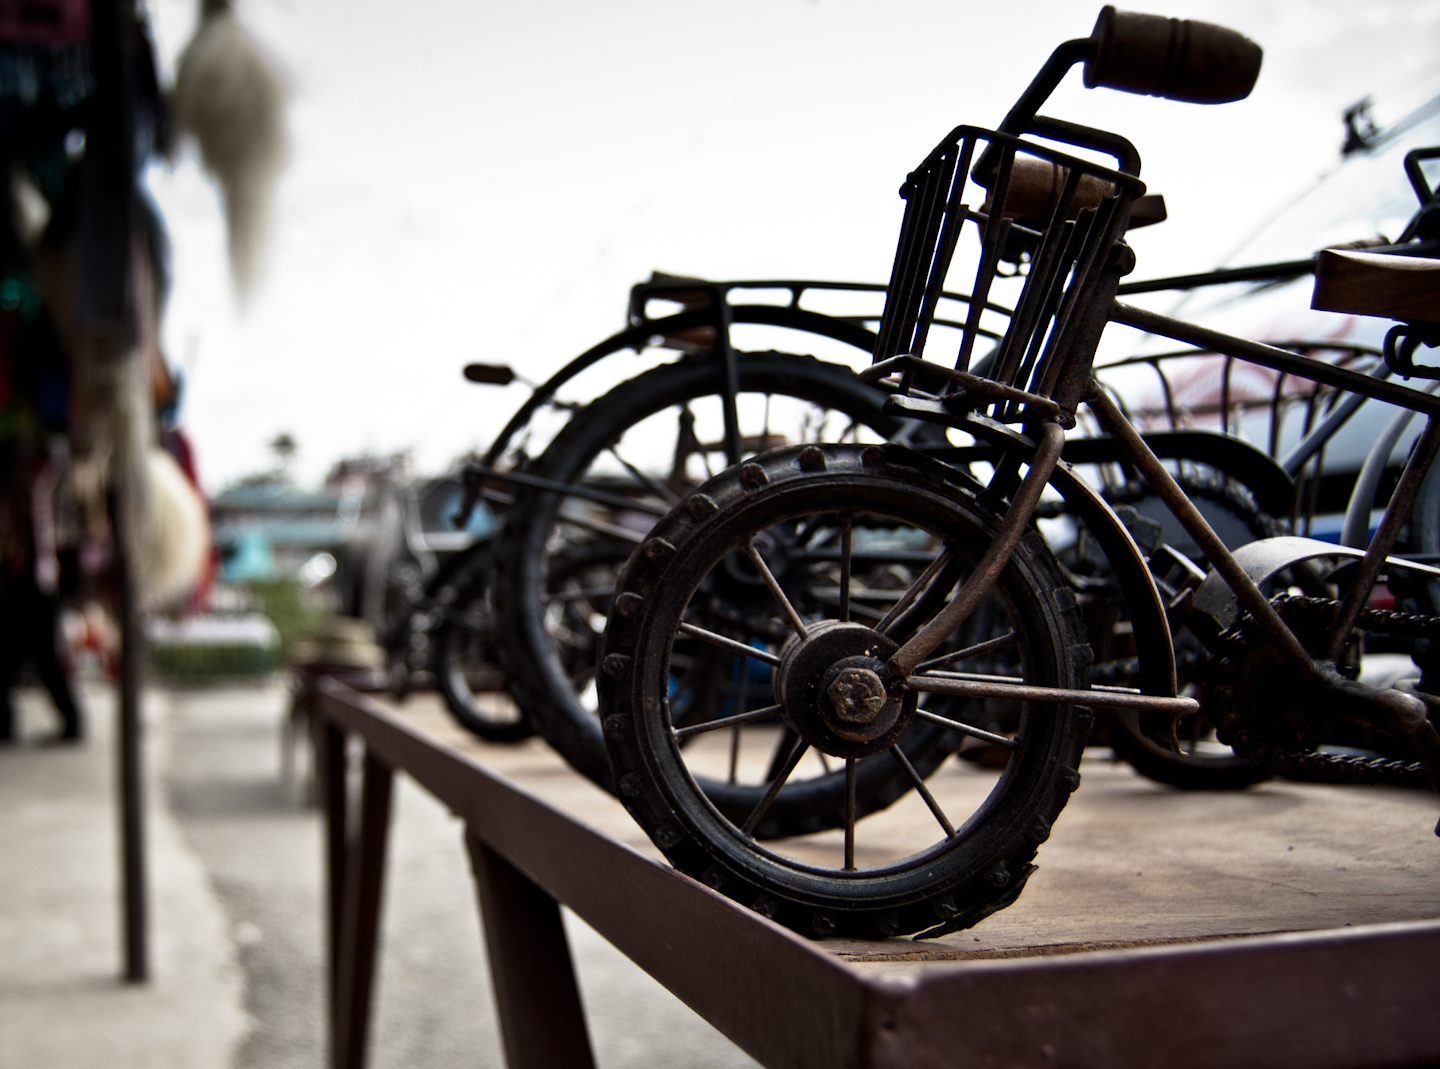 Photo: A Little Too Small Maybe  Toy metal bikes, by the streets of Pokhara, Nepal.  For #ToyTuesday curated by +Lars Pixel Clausen .